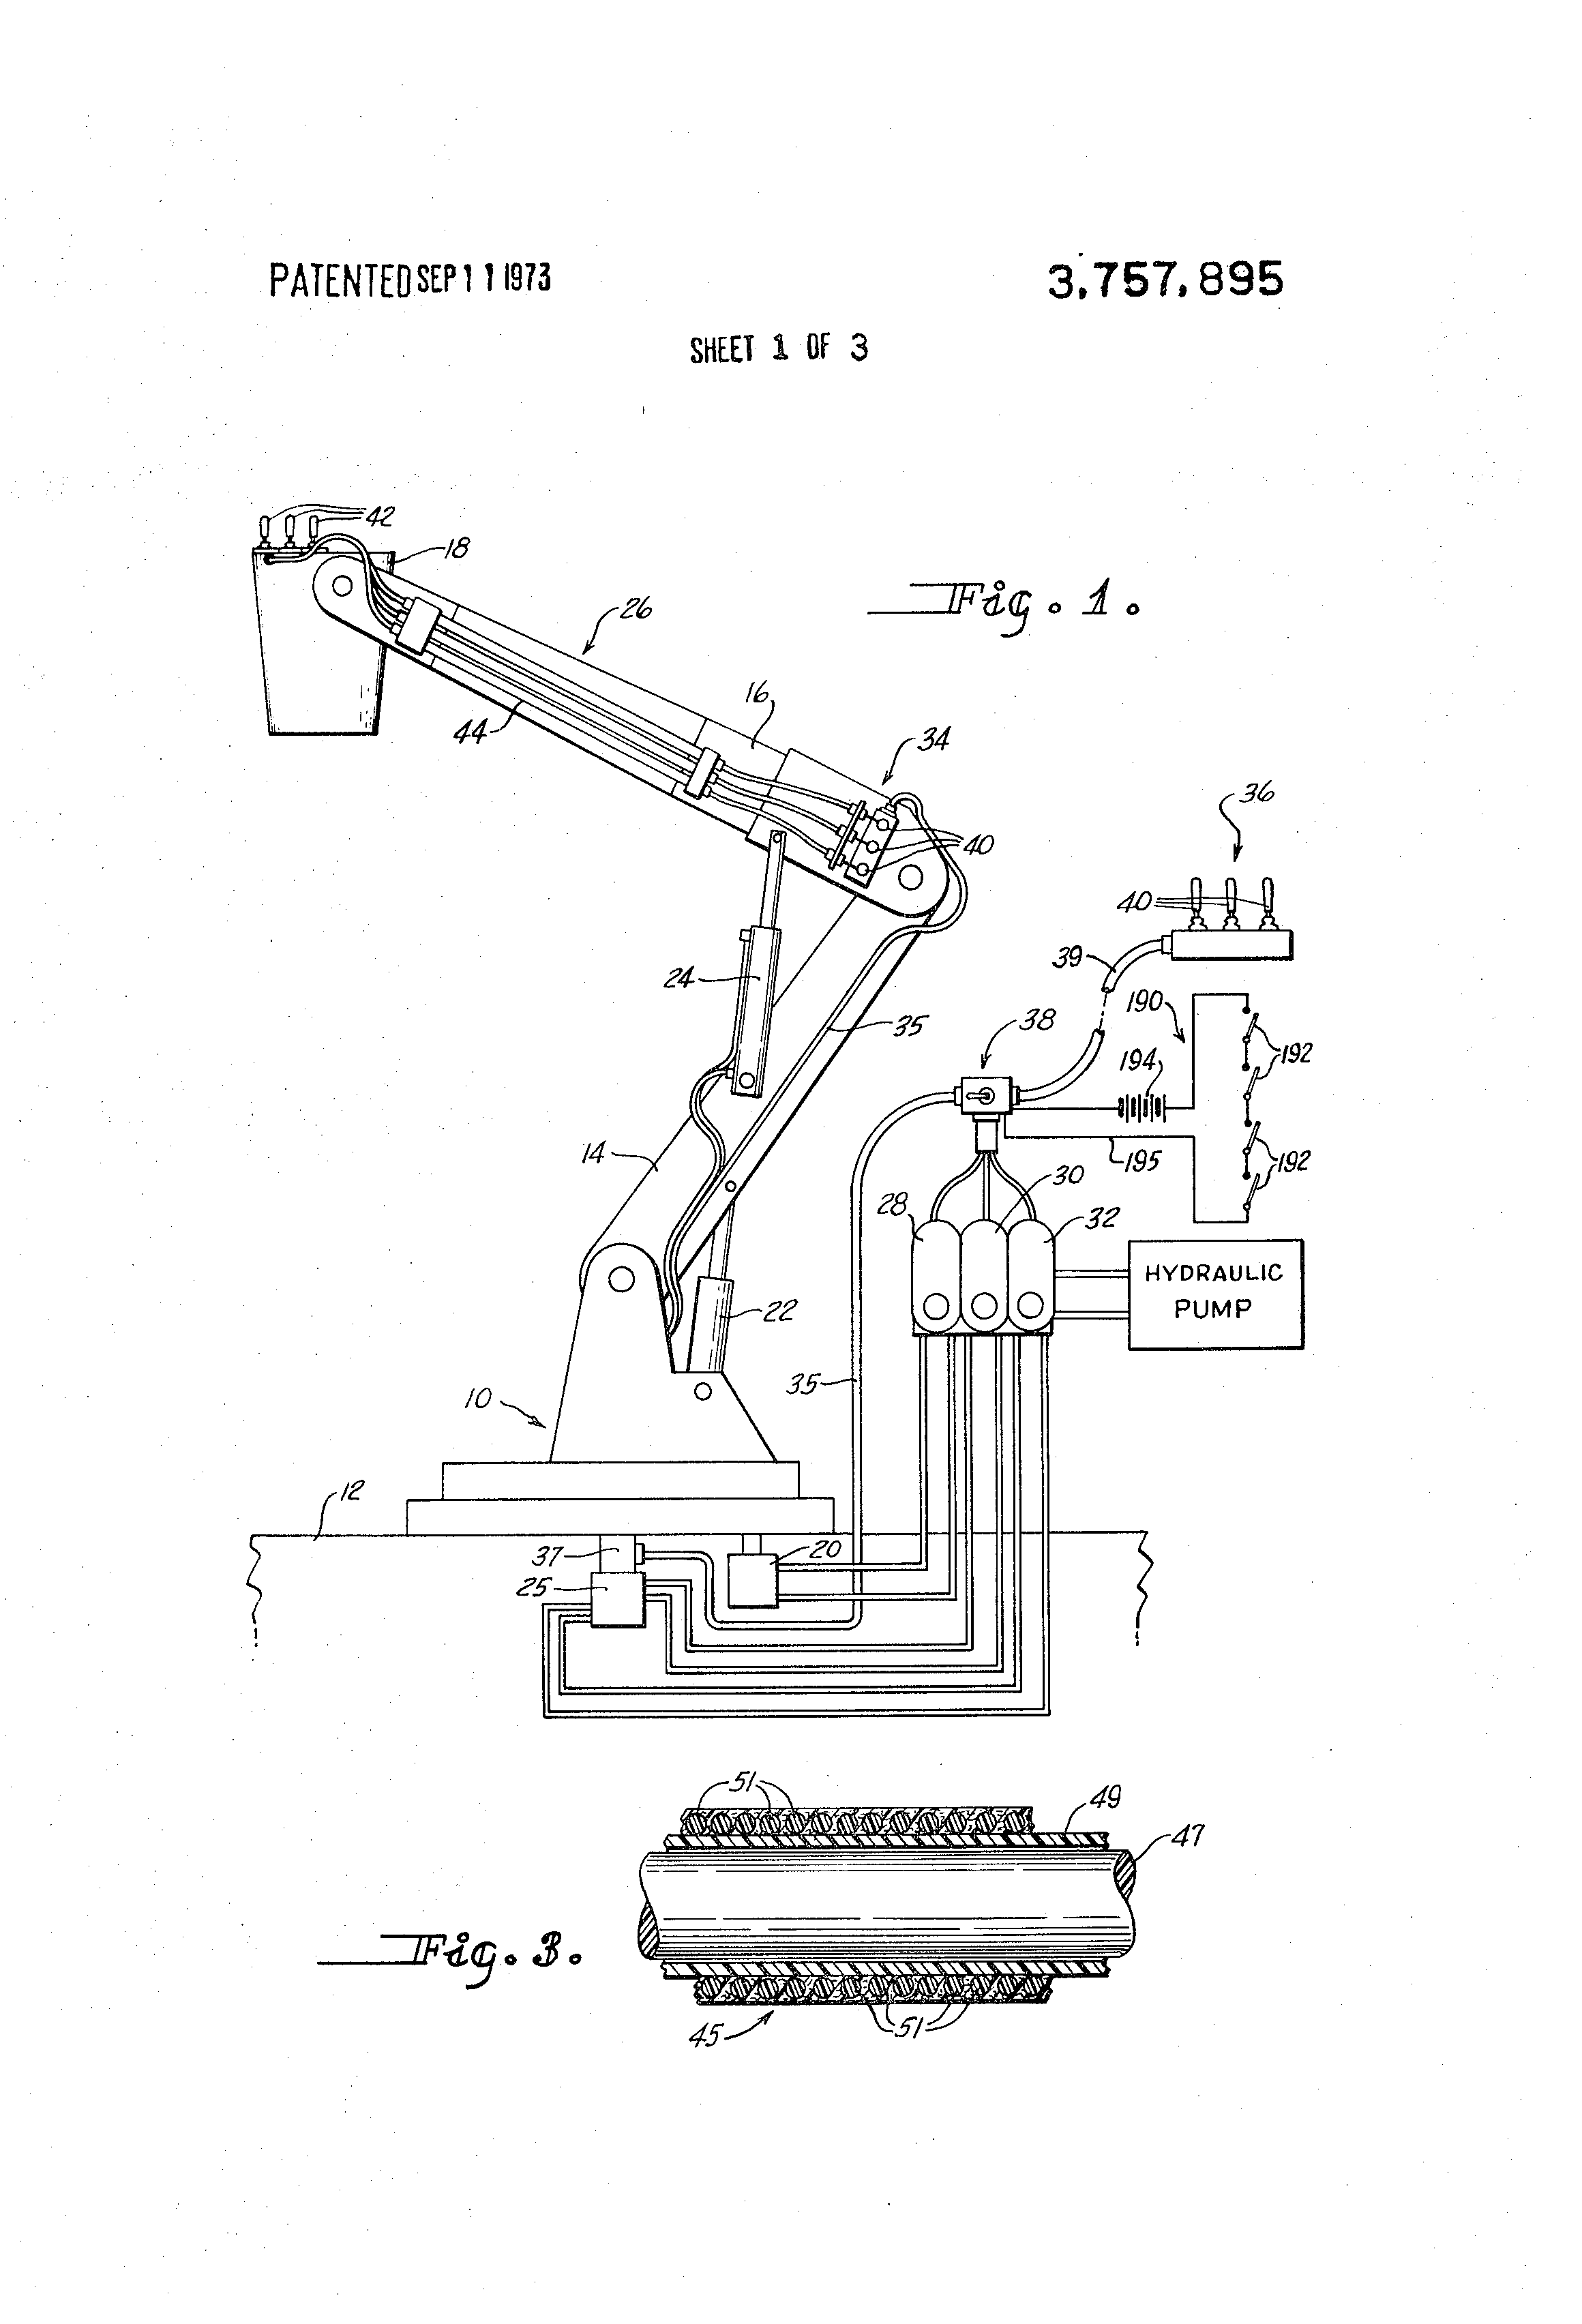 brevetto us3757895 - aerial lift vehicle